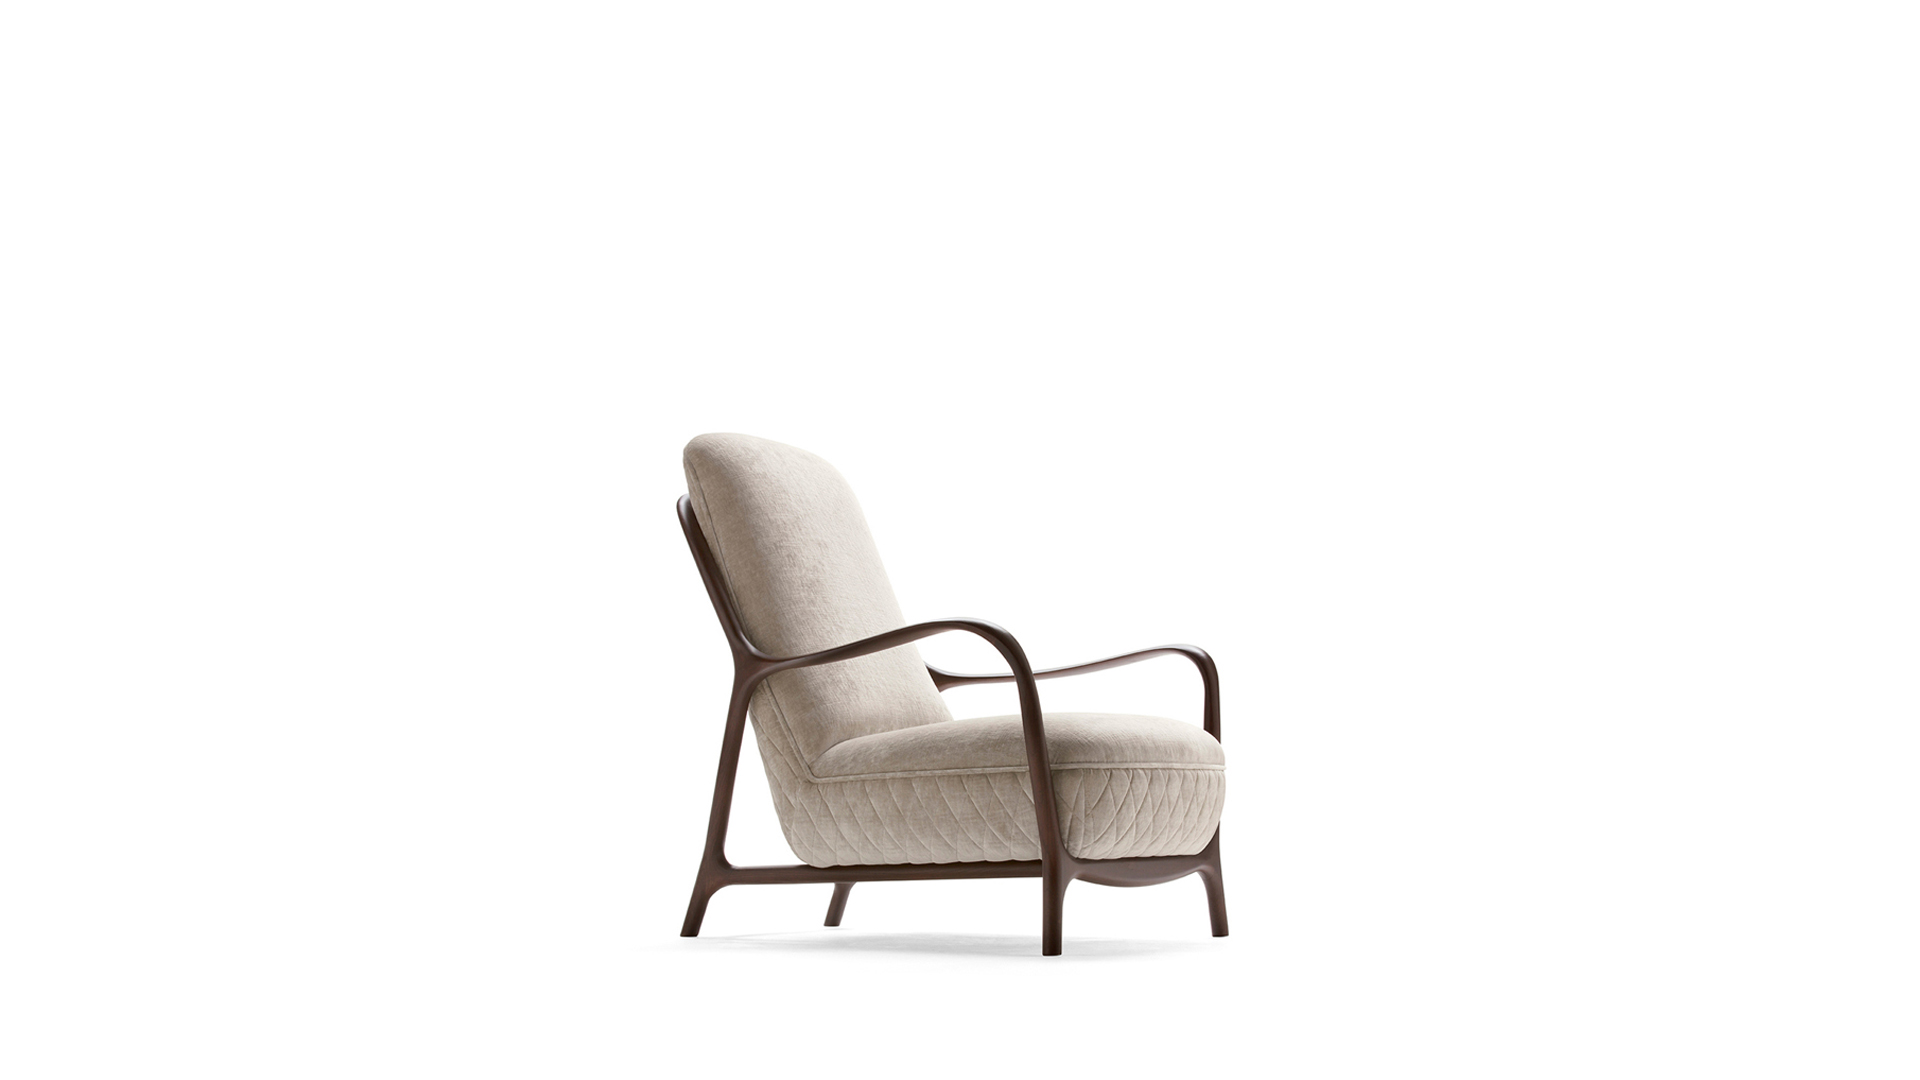 Armchair with solid wood frame